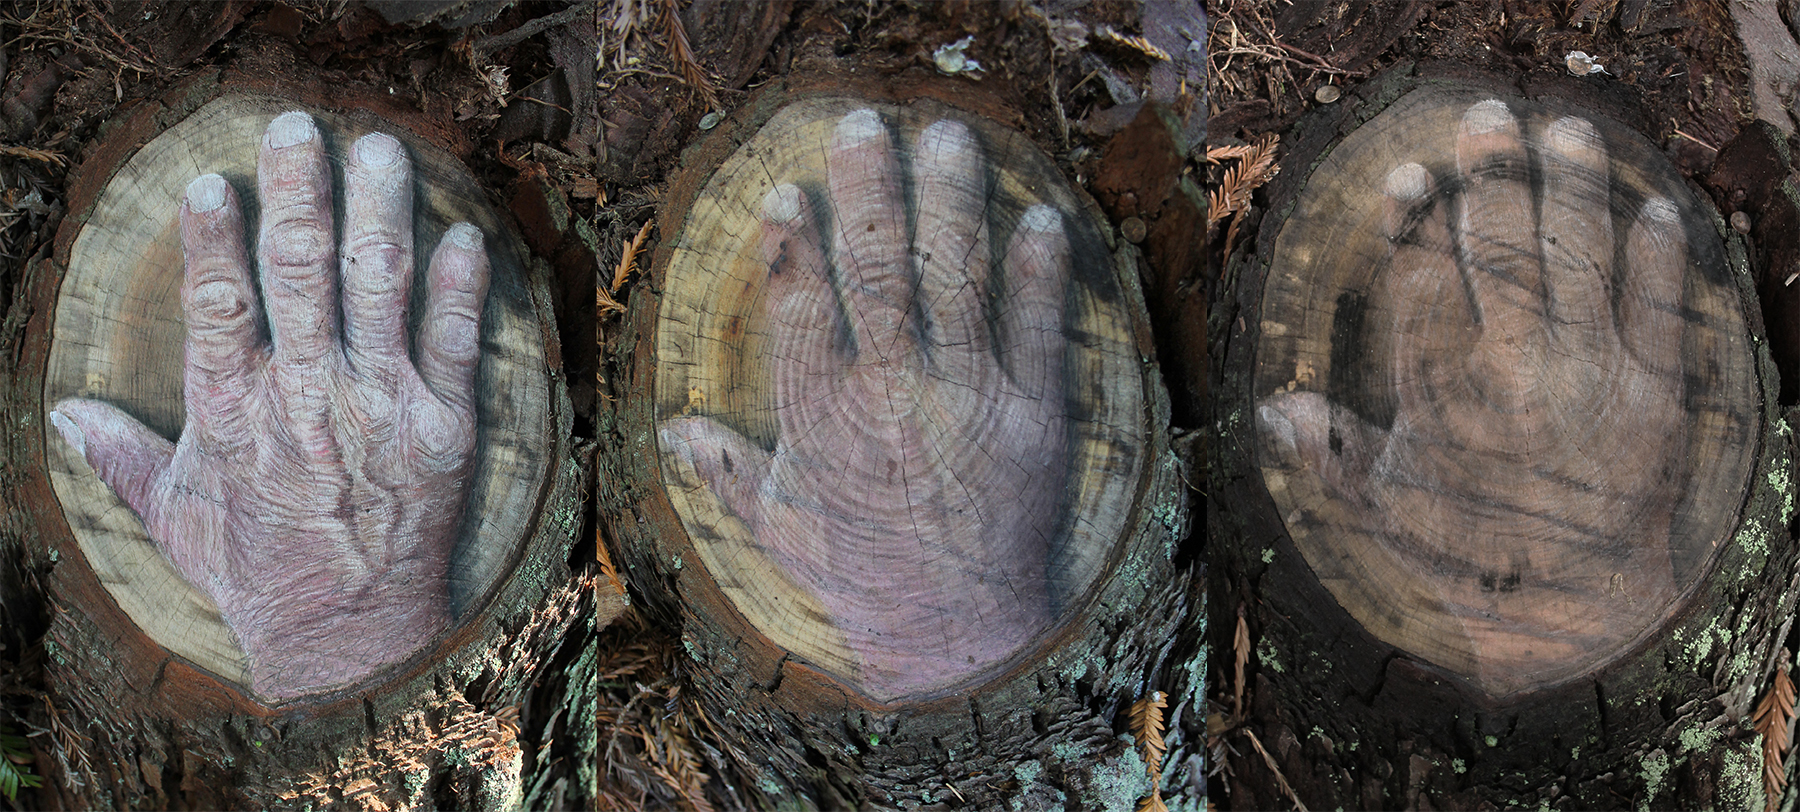 Hand Transition (over 6 months) - for web.jpg